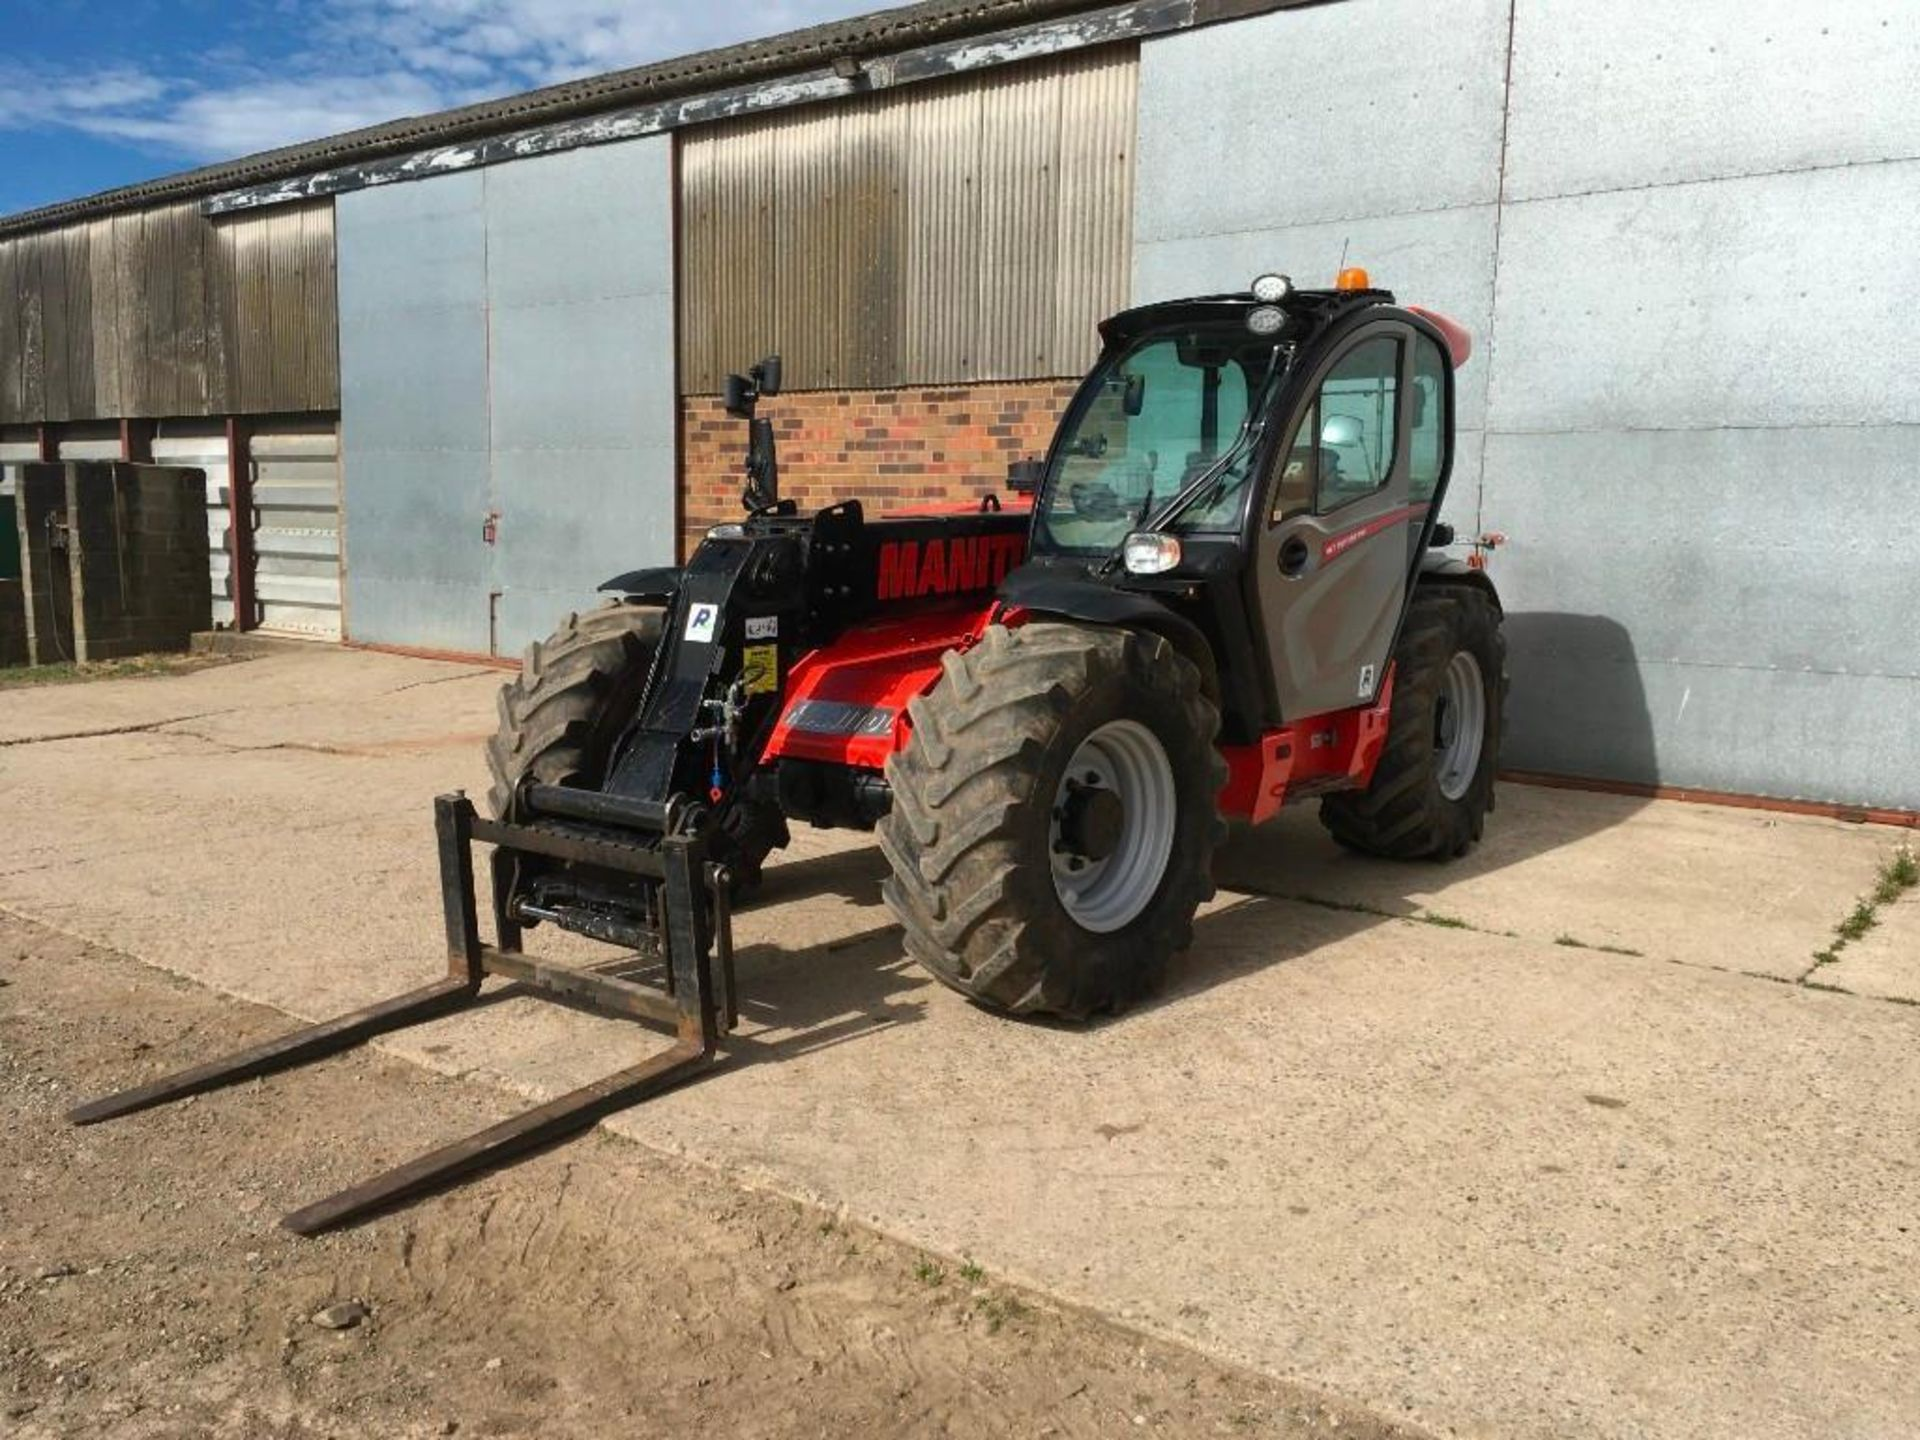 2017 Manitou MLT 737-130 PS+ Elite telehandler with rear pick up hitch, power shift, air seat, elect - Image 3 of 22